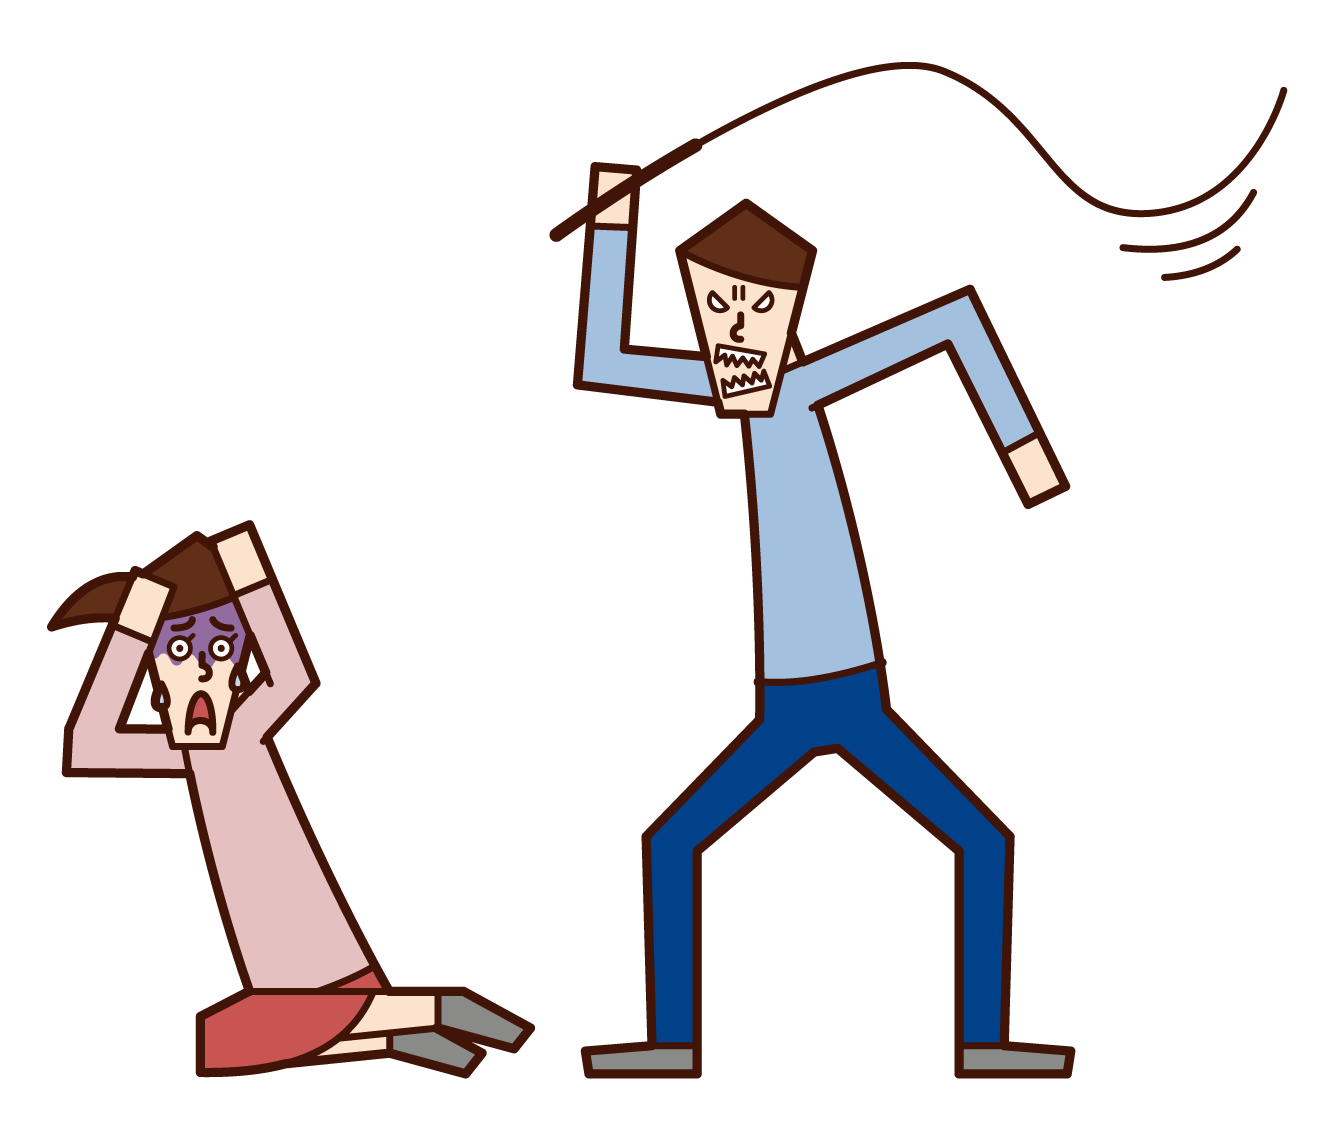 Illustration of a man who commits domestic violence